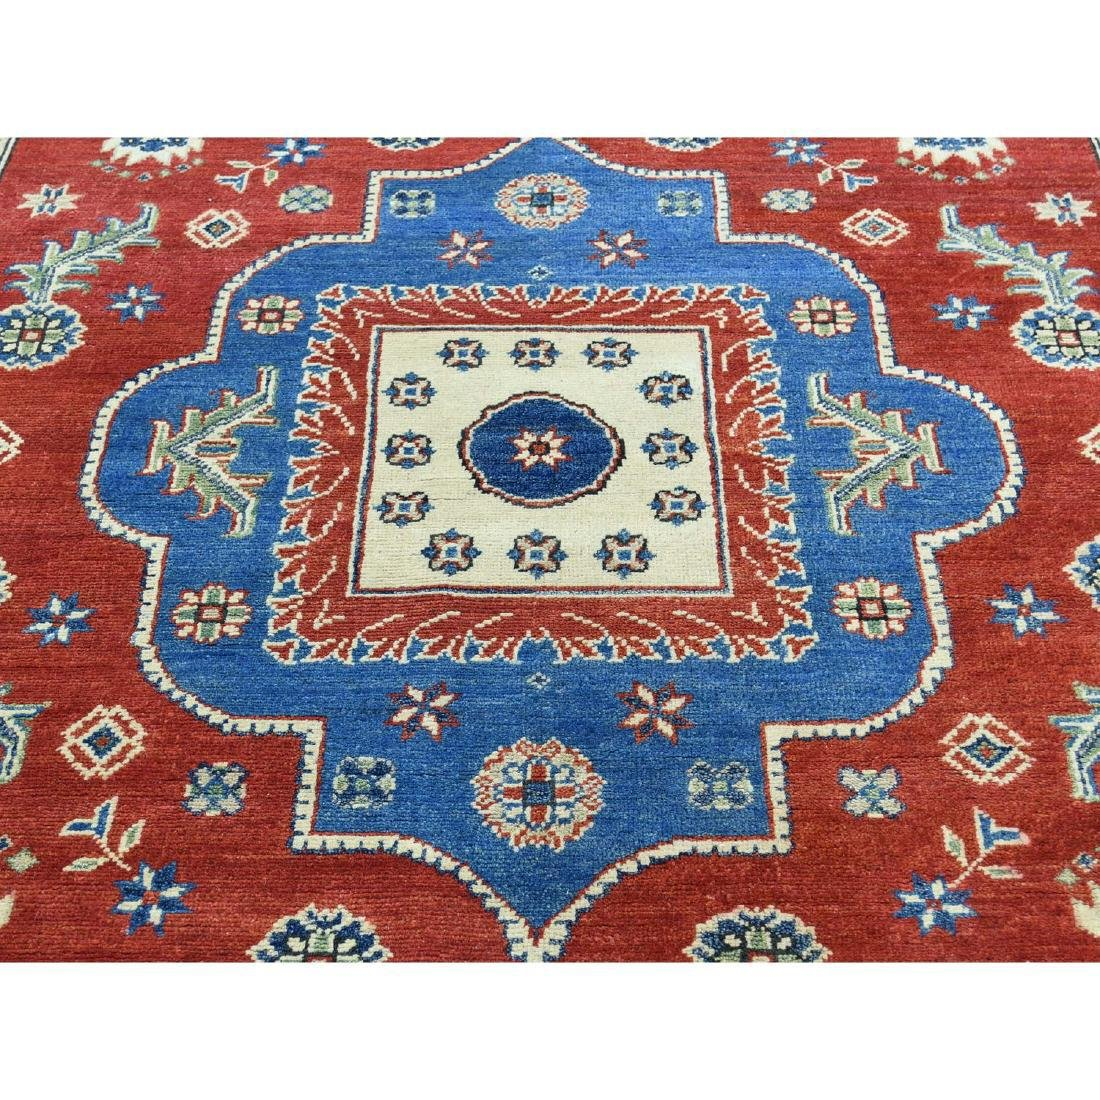 Hand-Knotted Kazak Square Tribal Design Rug 6.7x6.7 - 4